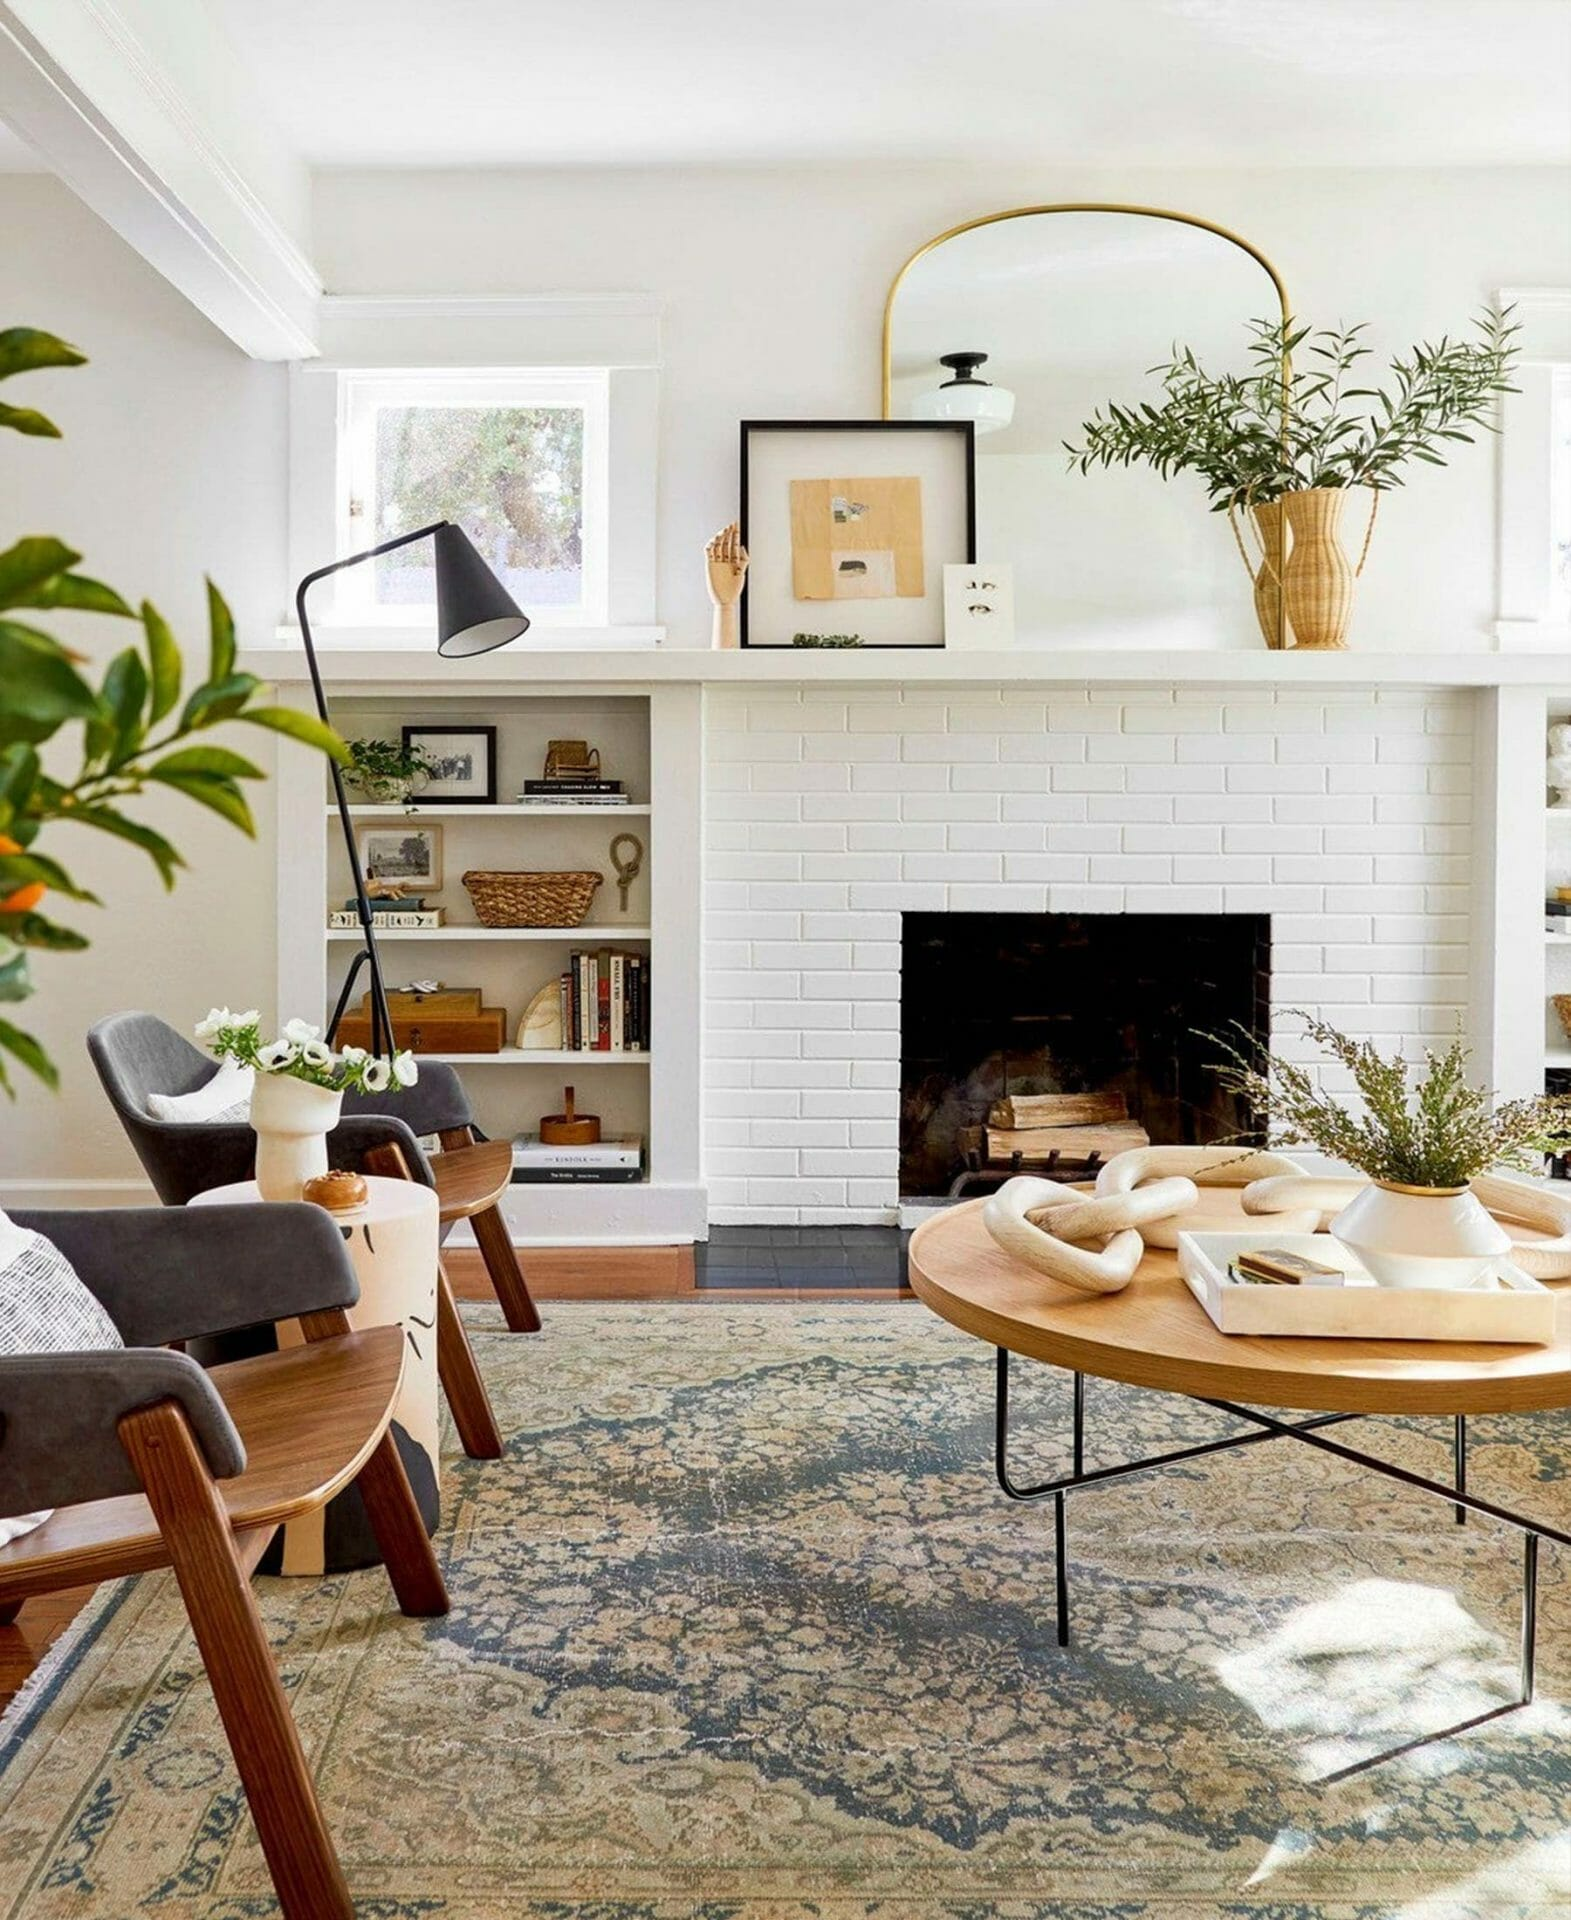 This living room designed by Emily Henderson features a white fireplace and Gira Lamp.